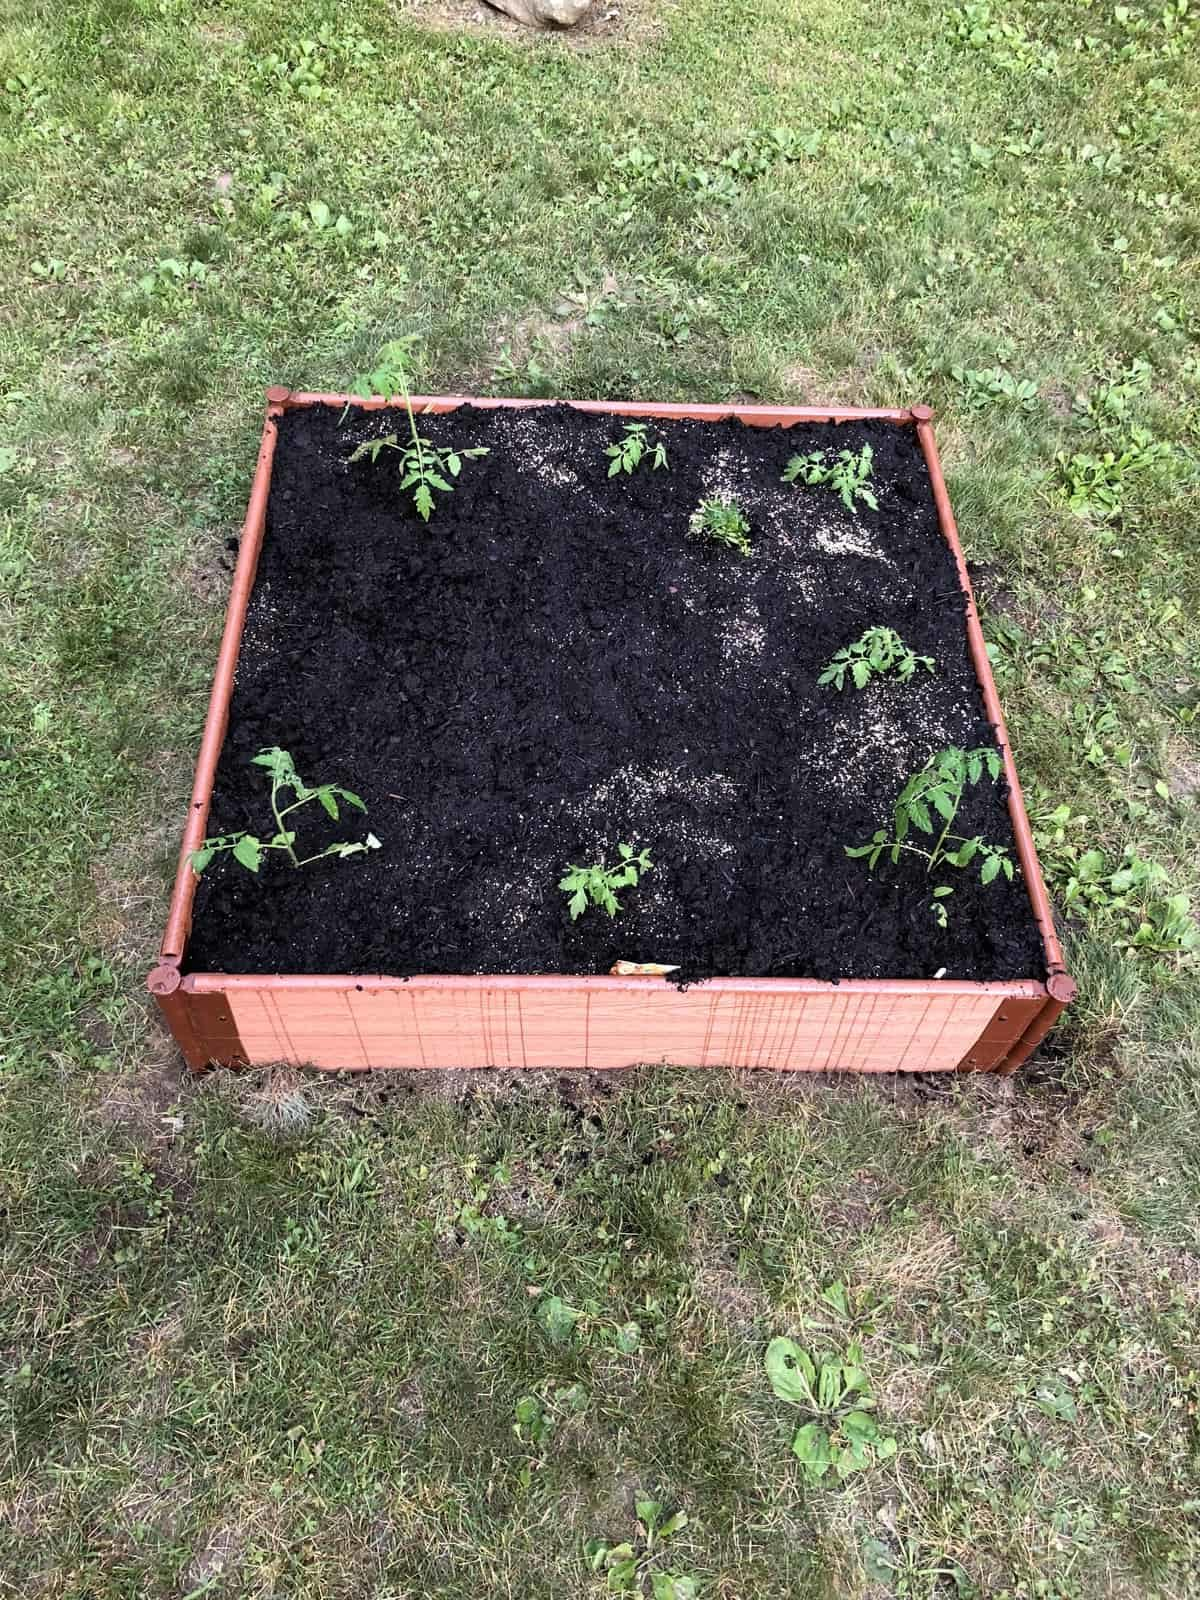 Frame It All Raised Garden Bed